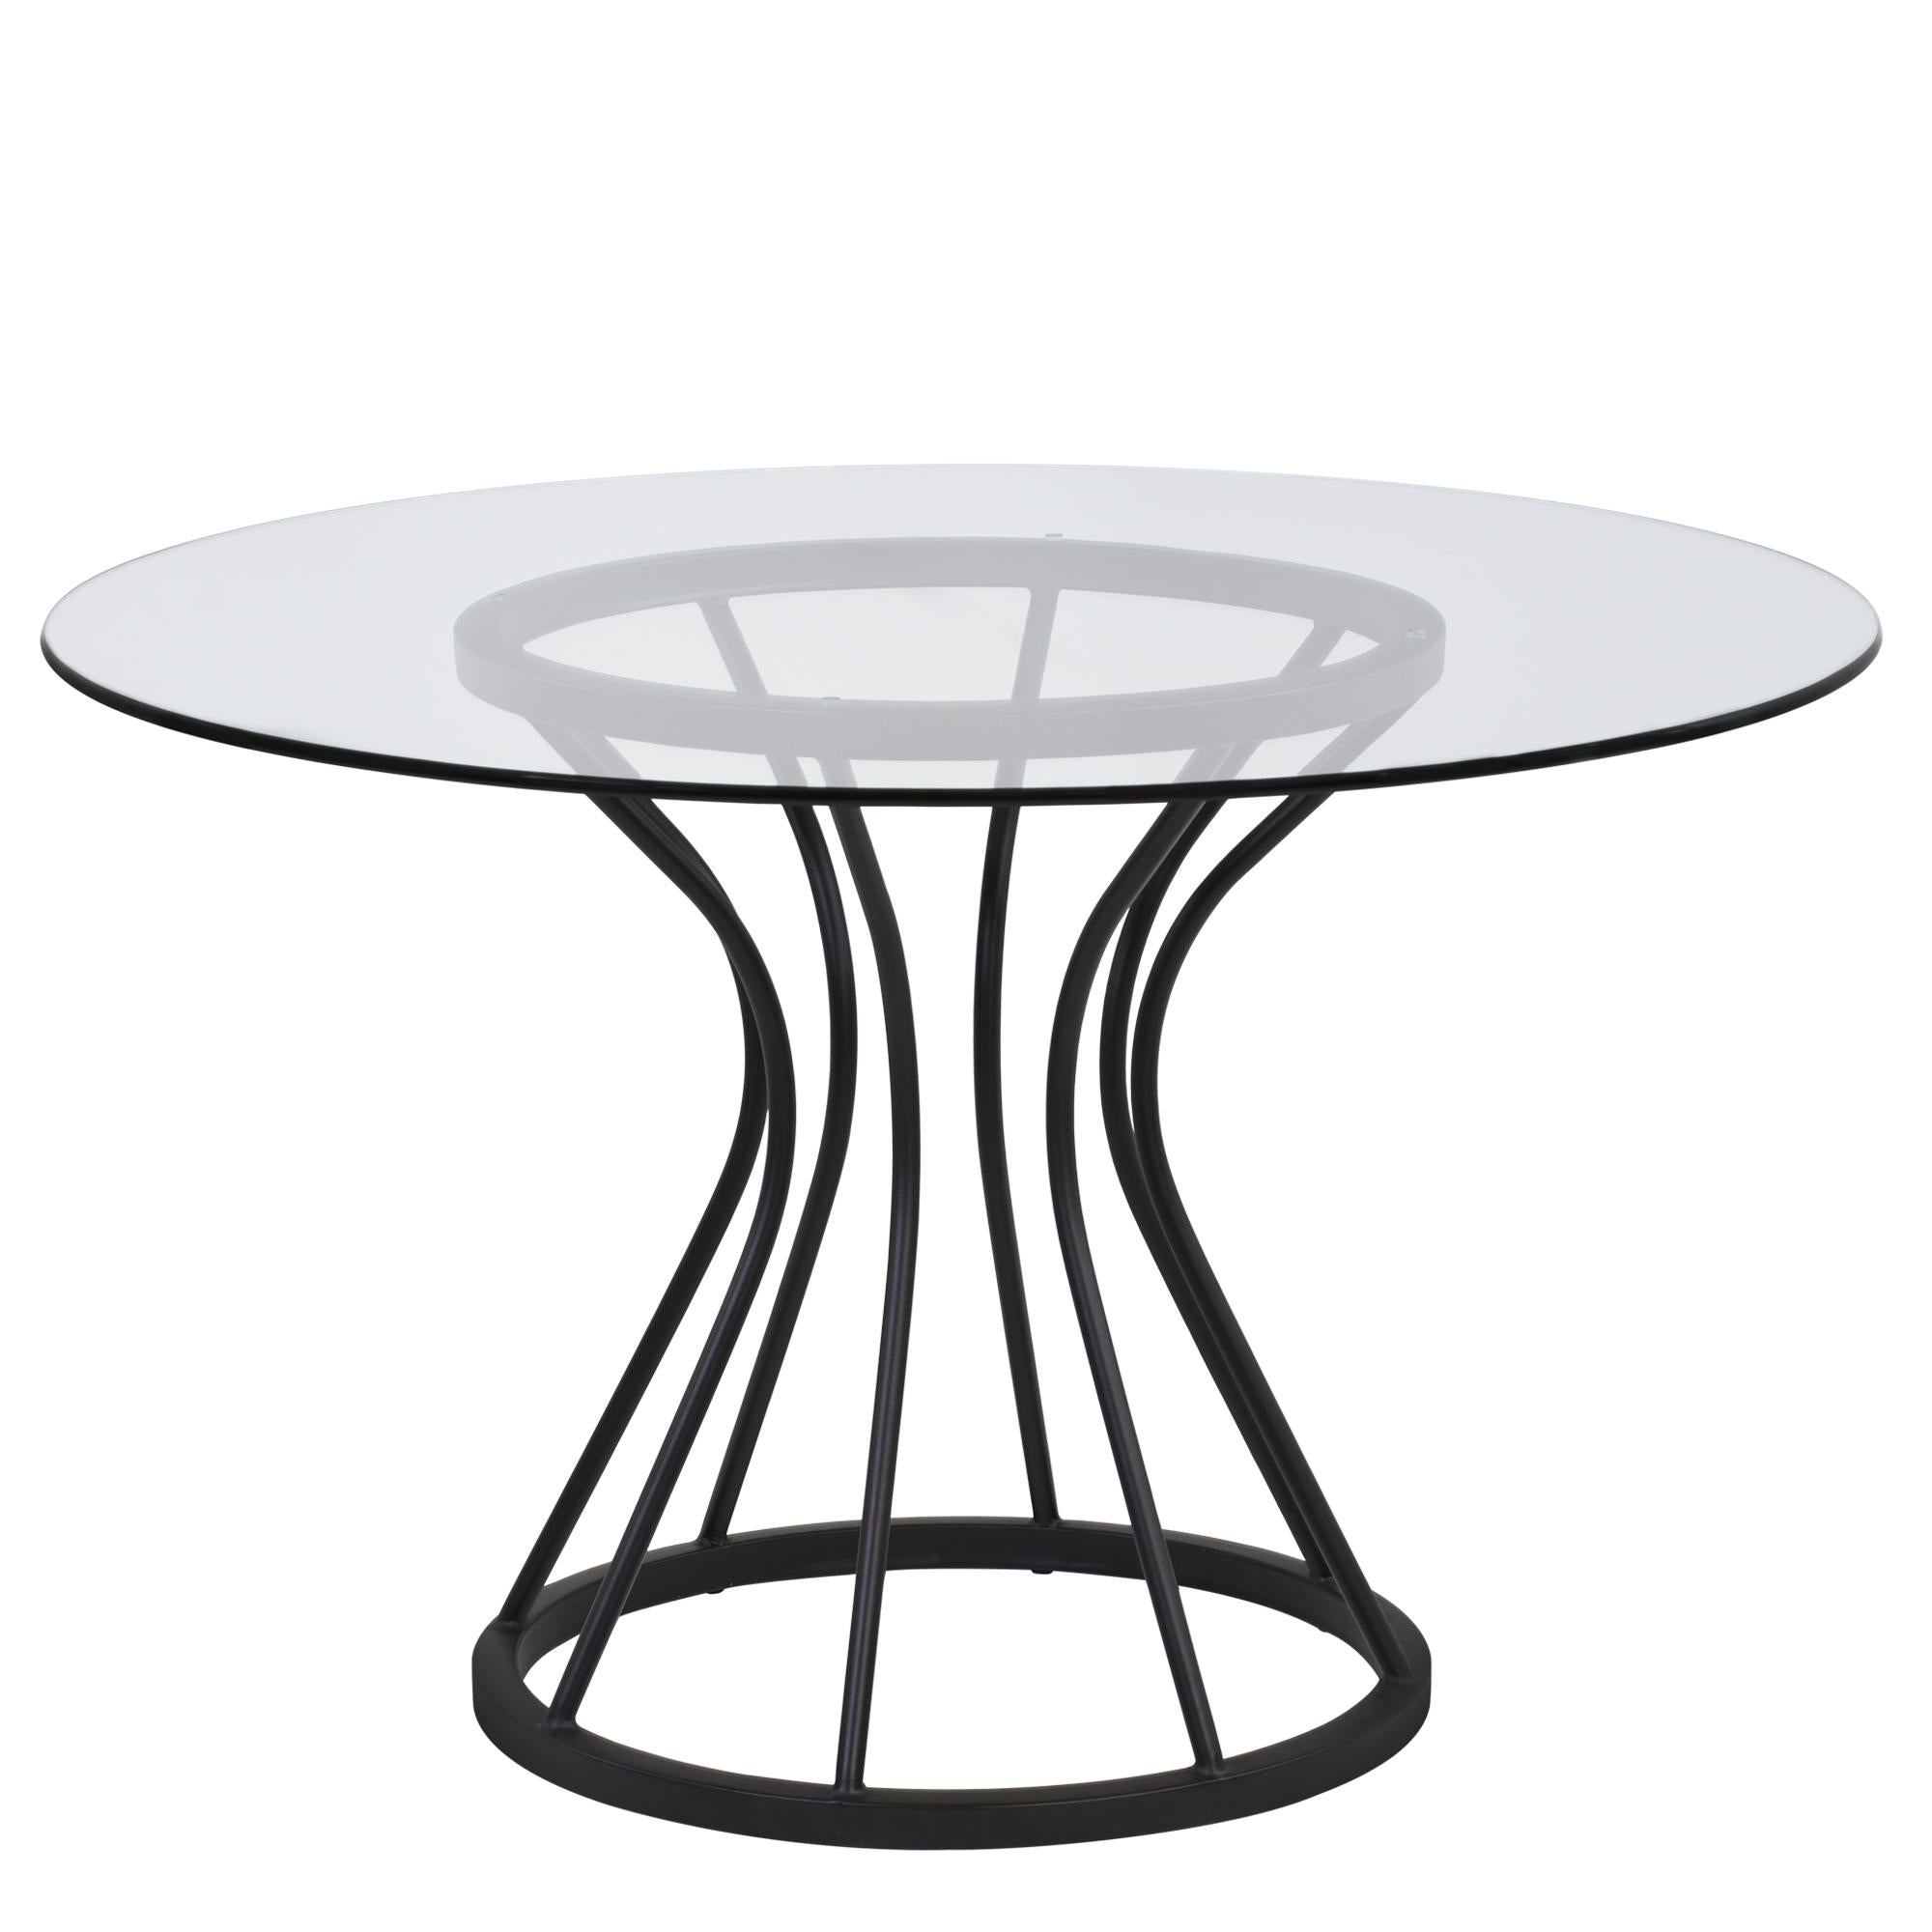 Armen Living Zurich Round Dining Table in Black Finish and 48' Glass Top